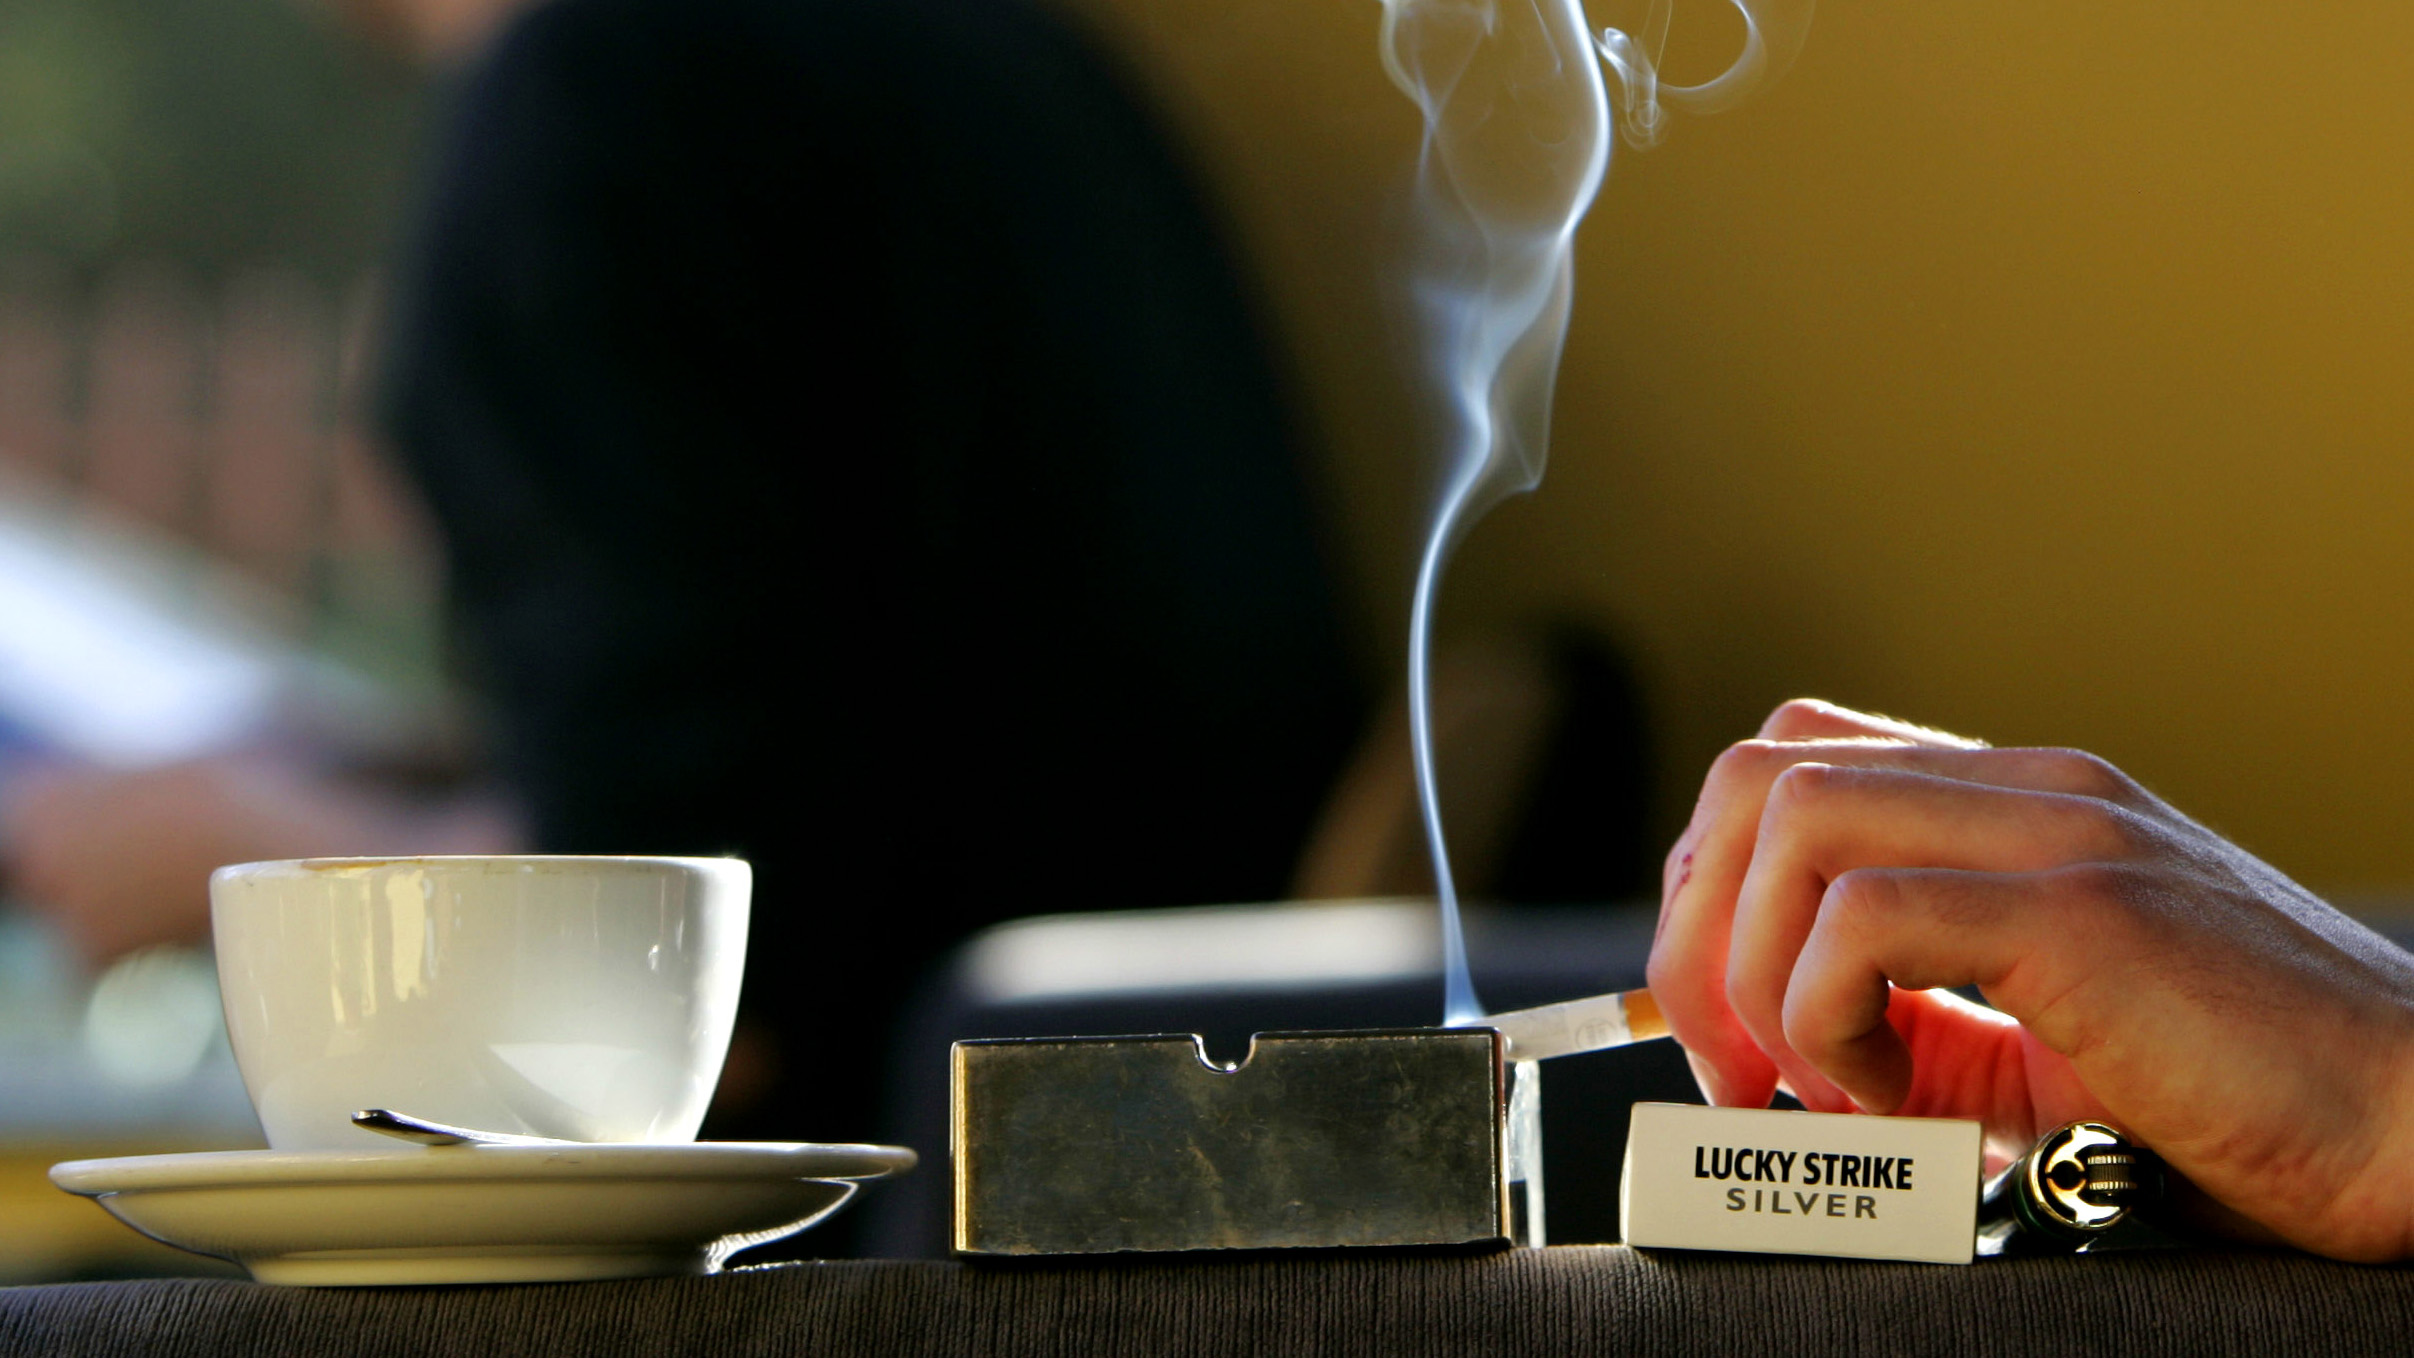 A customer smokes a cigarette in one of the last coffee shops in Glasgow to allow smoking, Scotland, November 10, 2004. Scotland is set to follow Ireland's pioneering anti-tobacco stance on Wednesday by announcing a ban on smoking in public buildings. - RTXN1J9